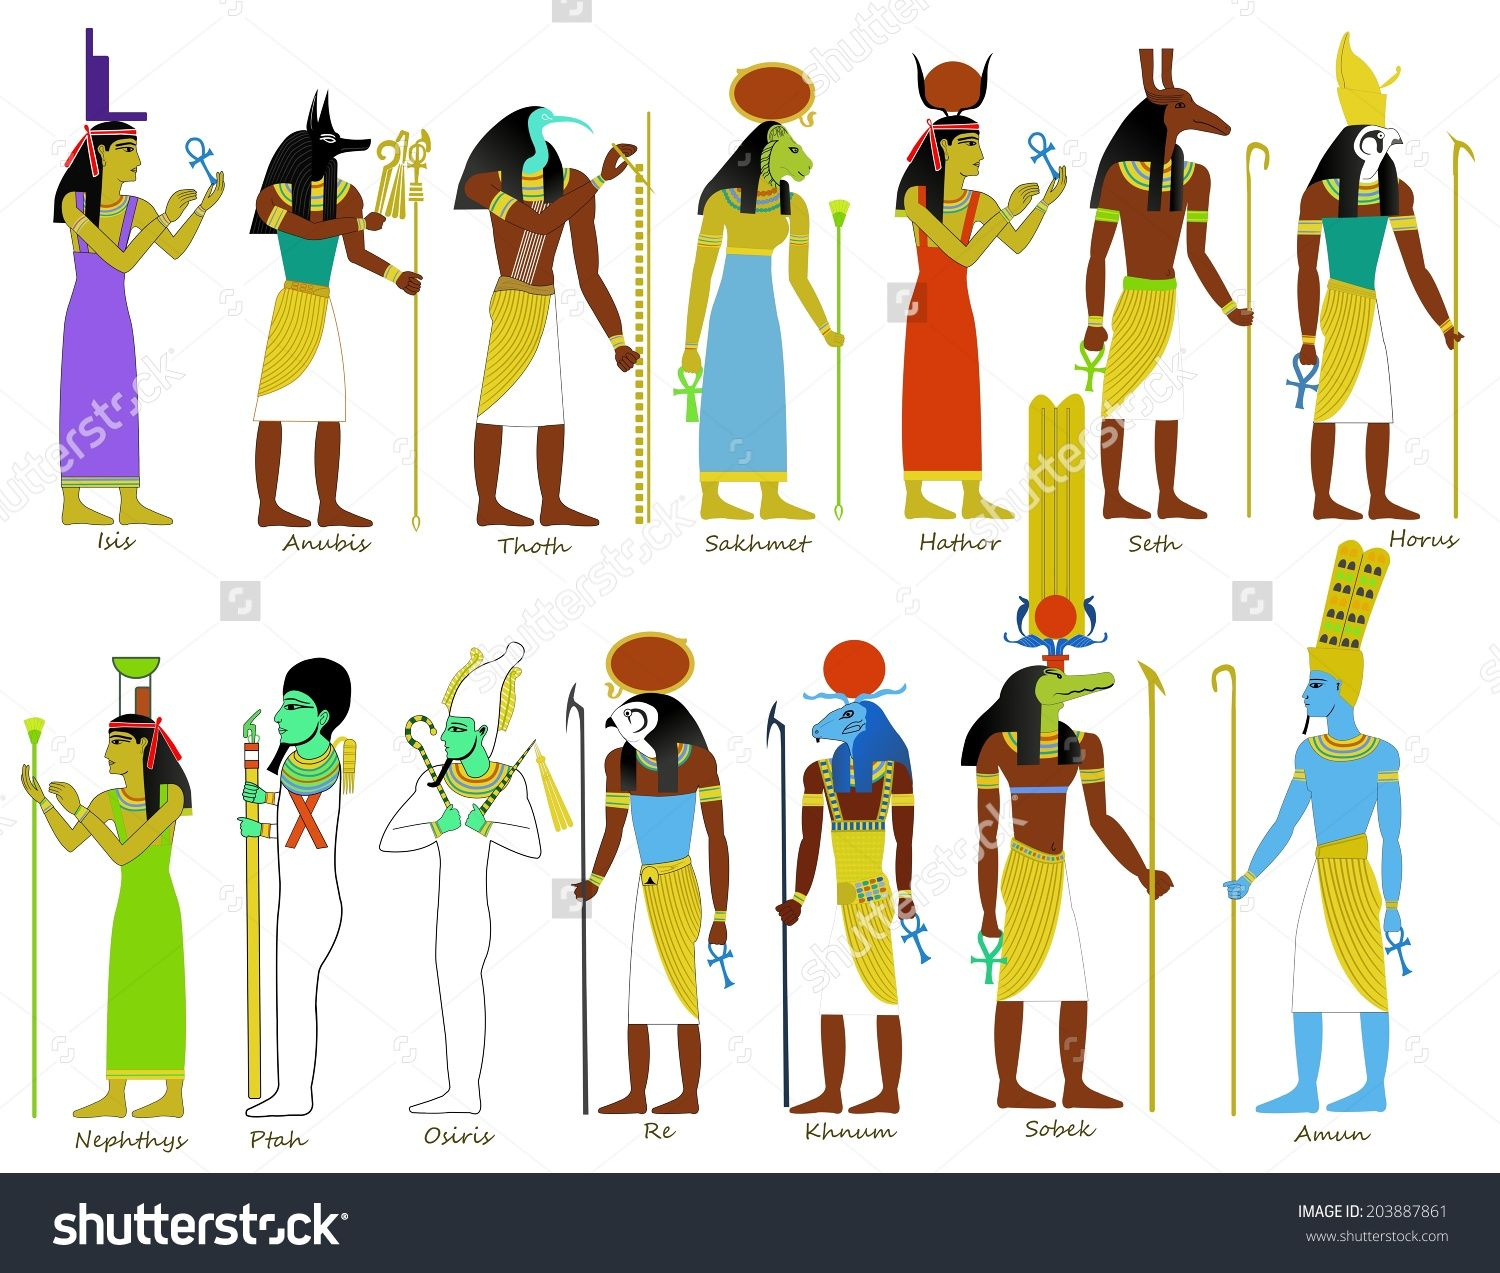 Stock photo a set of ancient egyptian gods and goddesses a set of ancient egyptian gods stock illustration image 42336854 publicscrutiny Image collections